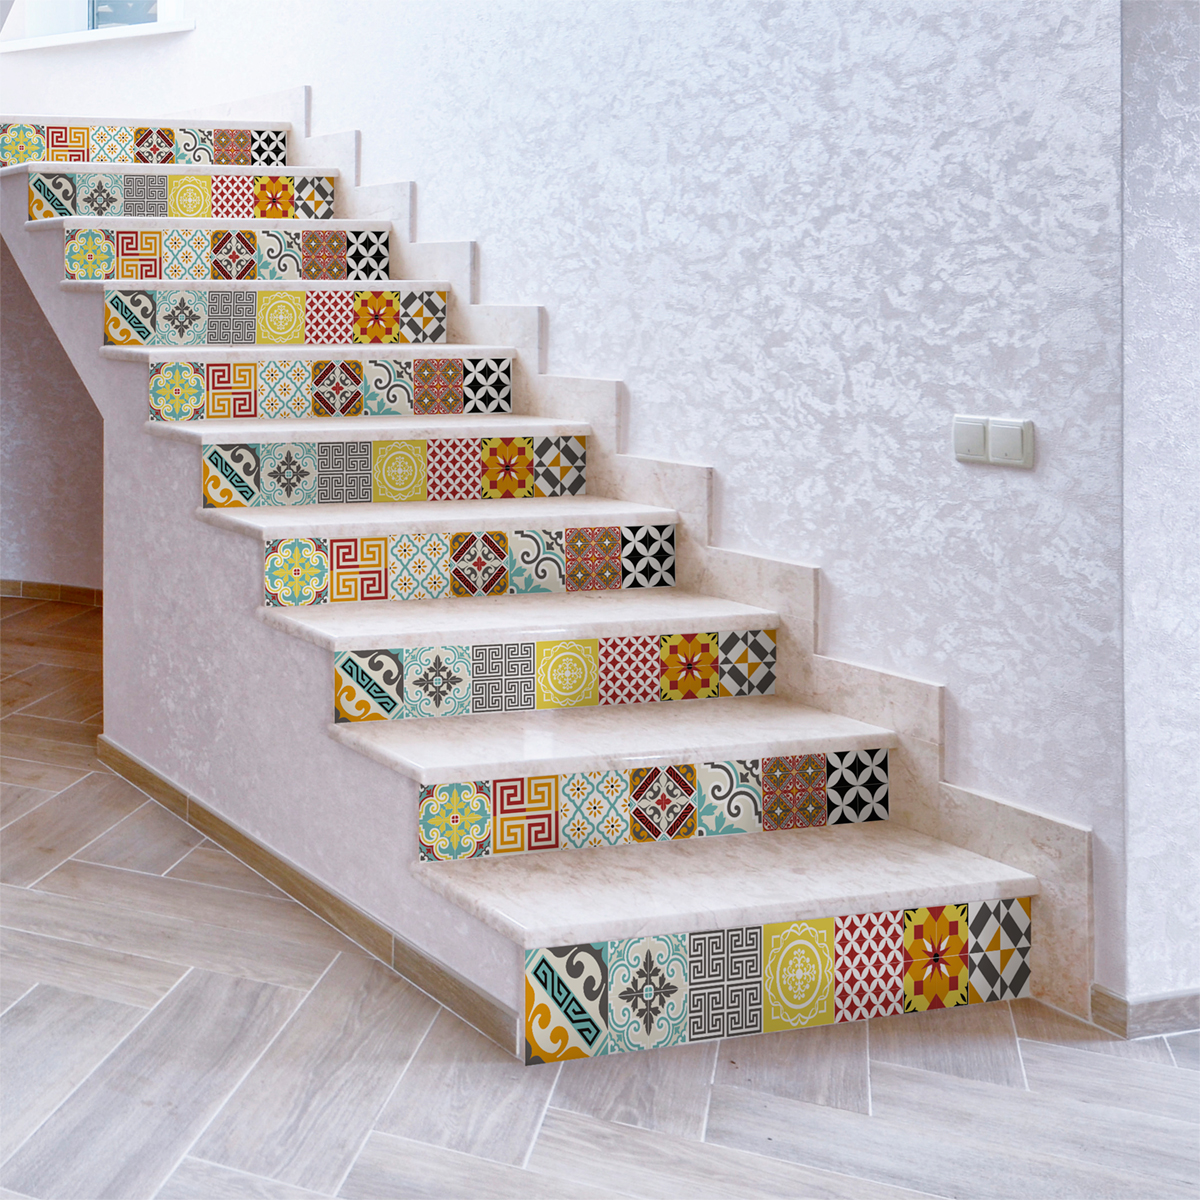 stickers escalier carrelages mosa que multicolore x 2 ambiance sticker col stairs ros a926. Black Bedroom Furniture Sets. Home Design Ideas